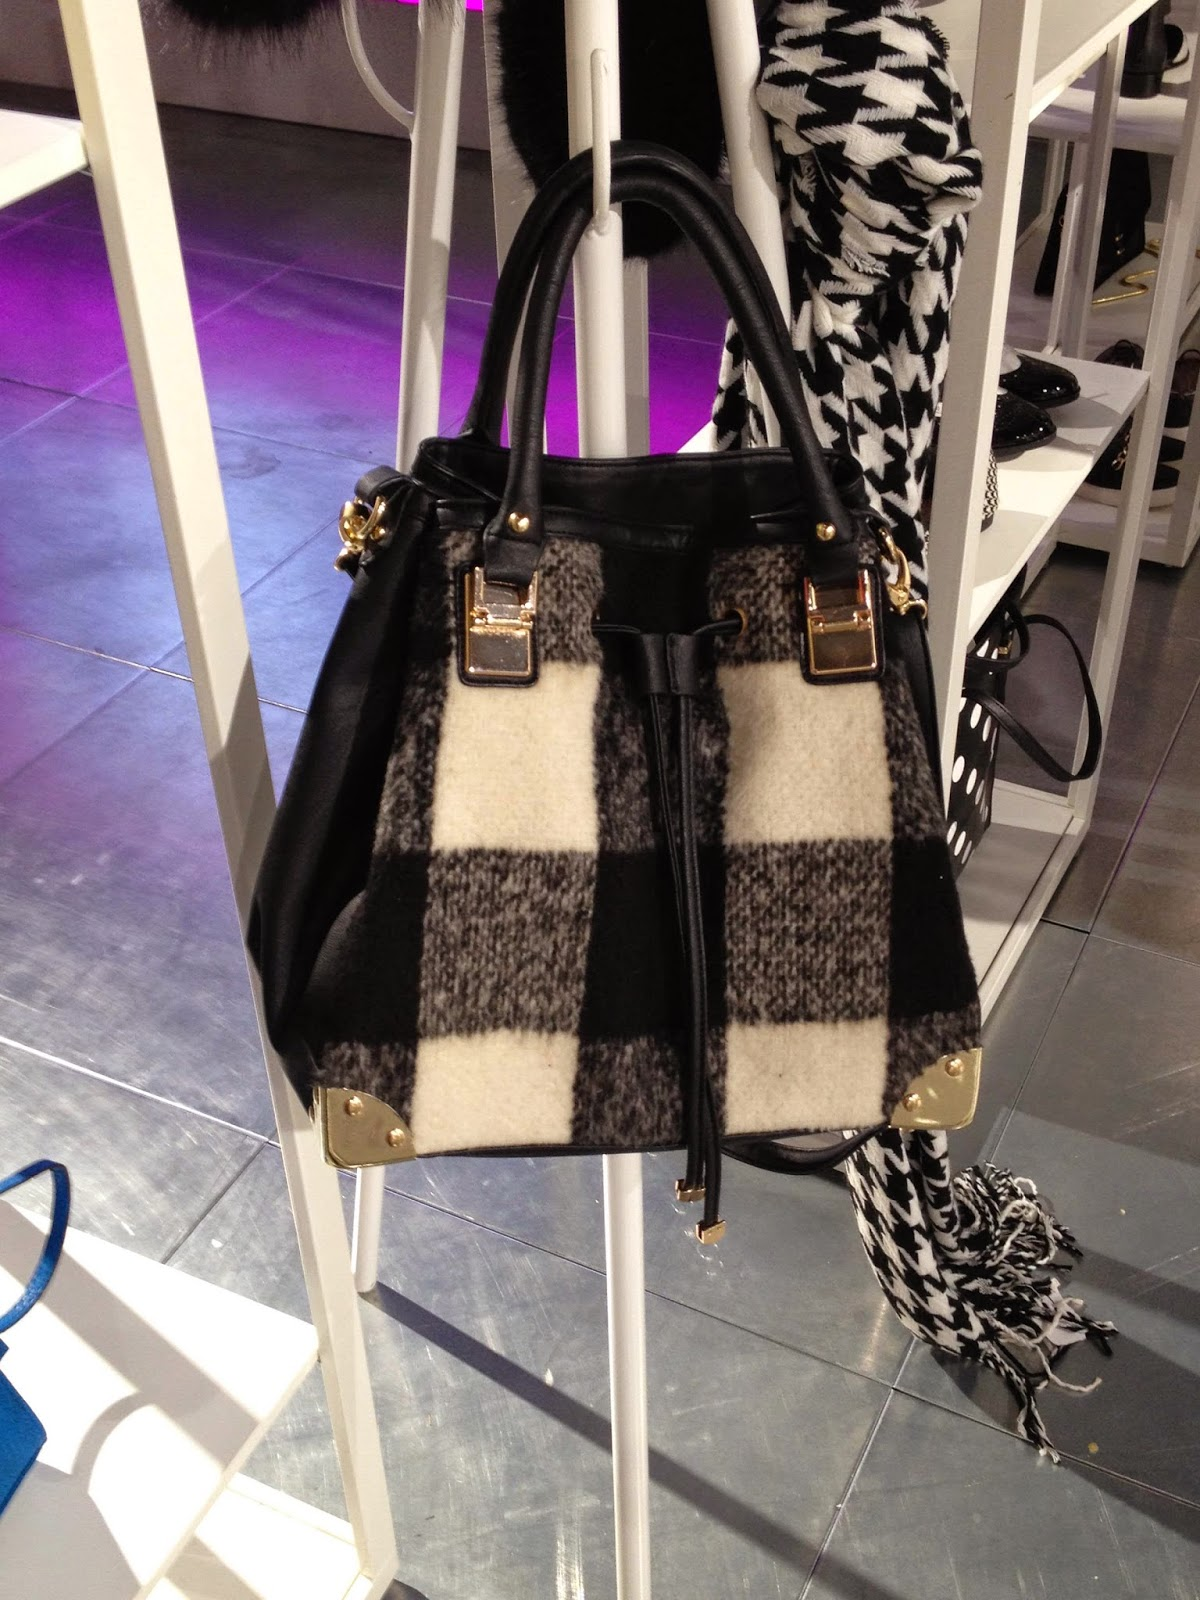 Bagstowear_Autumn - Winter Bags_5